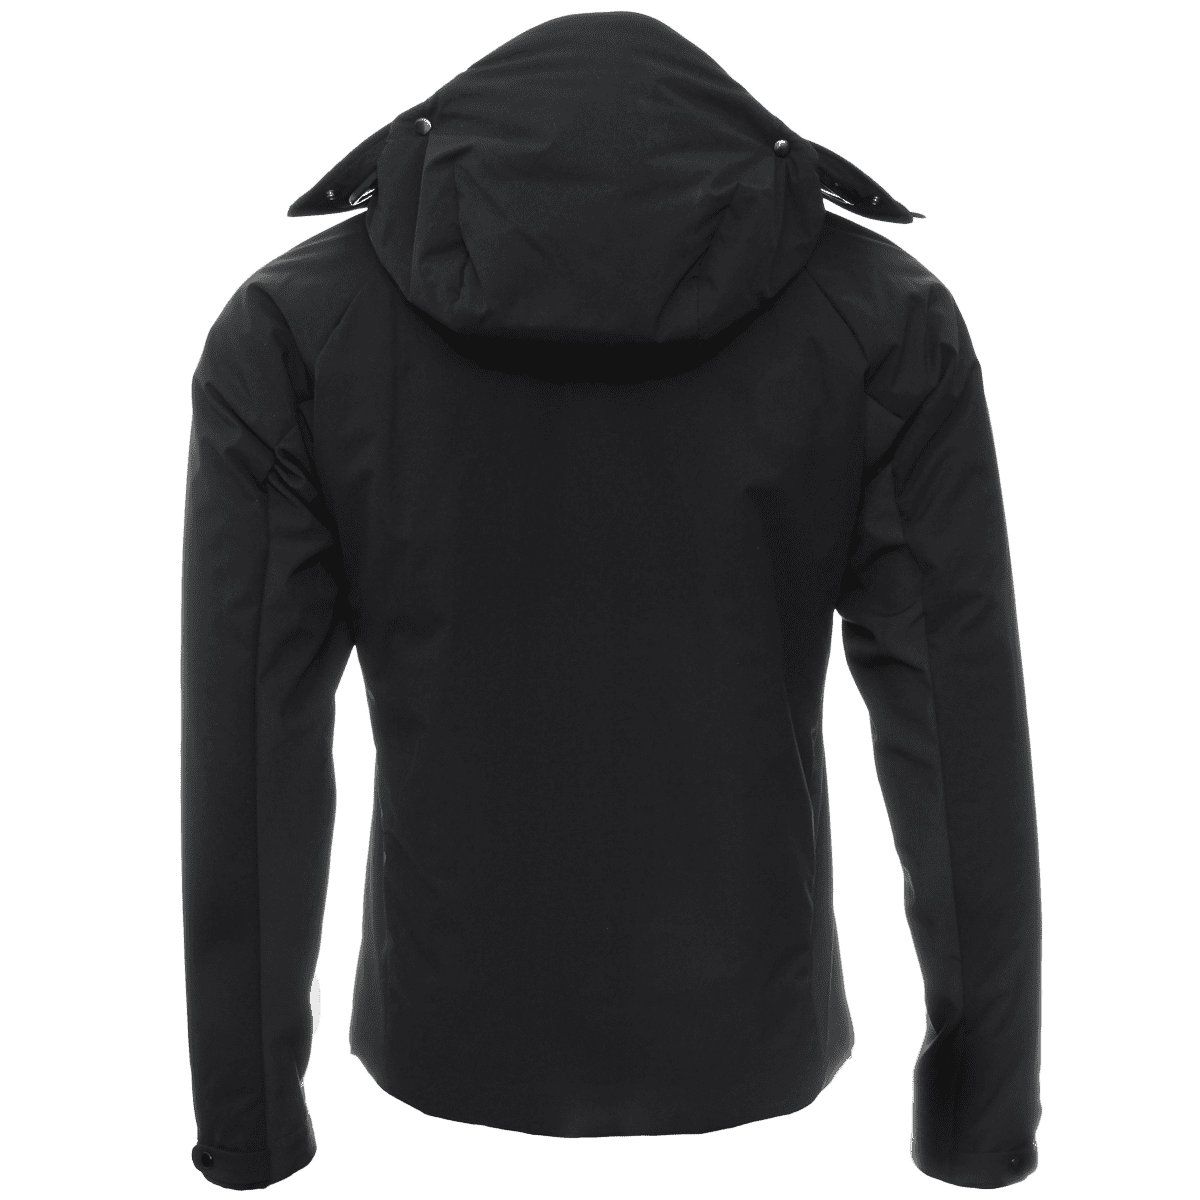 Cabinero Berlin Herrenmode SS17 C.P.Company Softshell 02CMOW127A004117M (3)